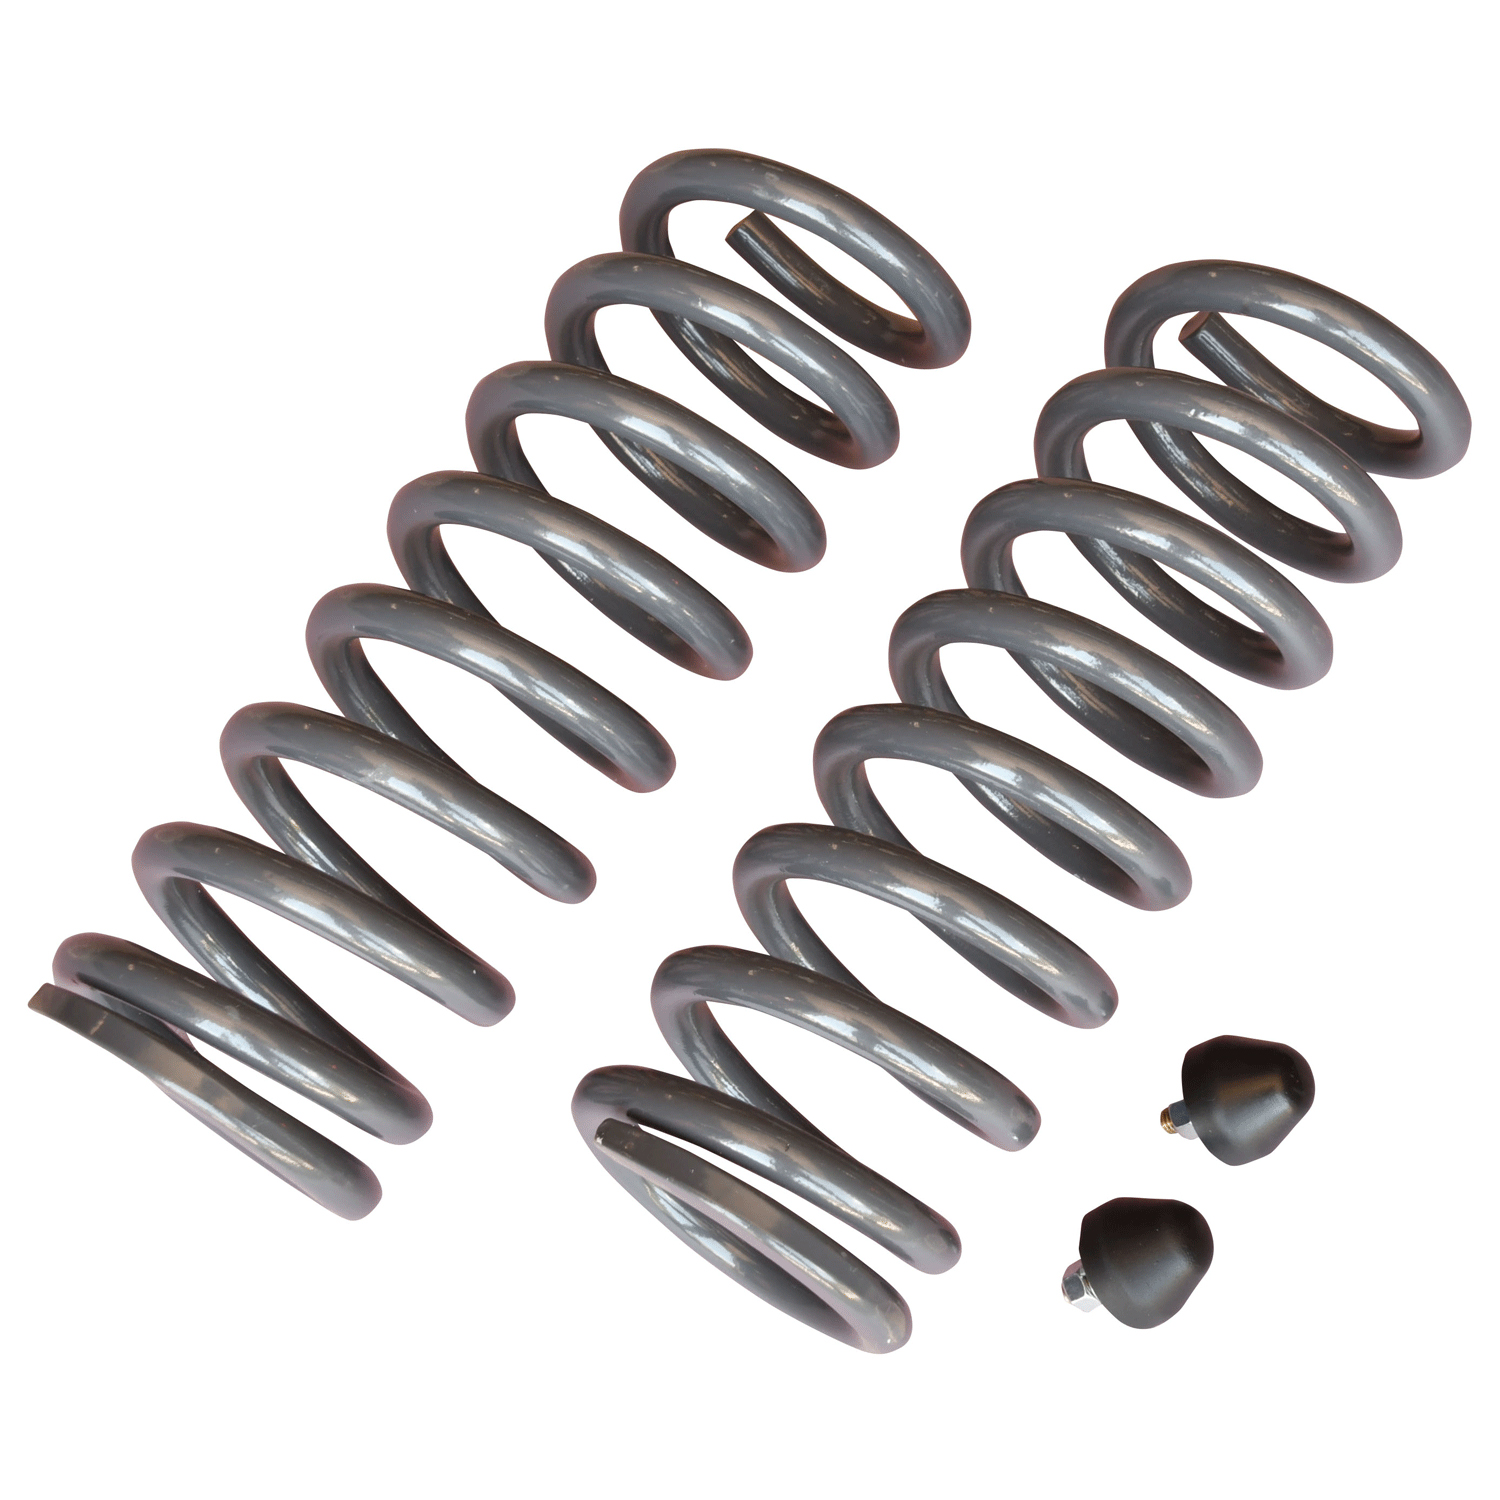 1964-1966 GM A-Body Front Lowering Coil Springs 2 in. Drop (Big Block)